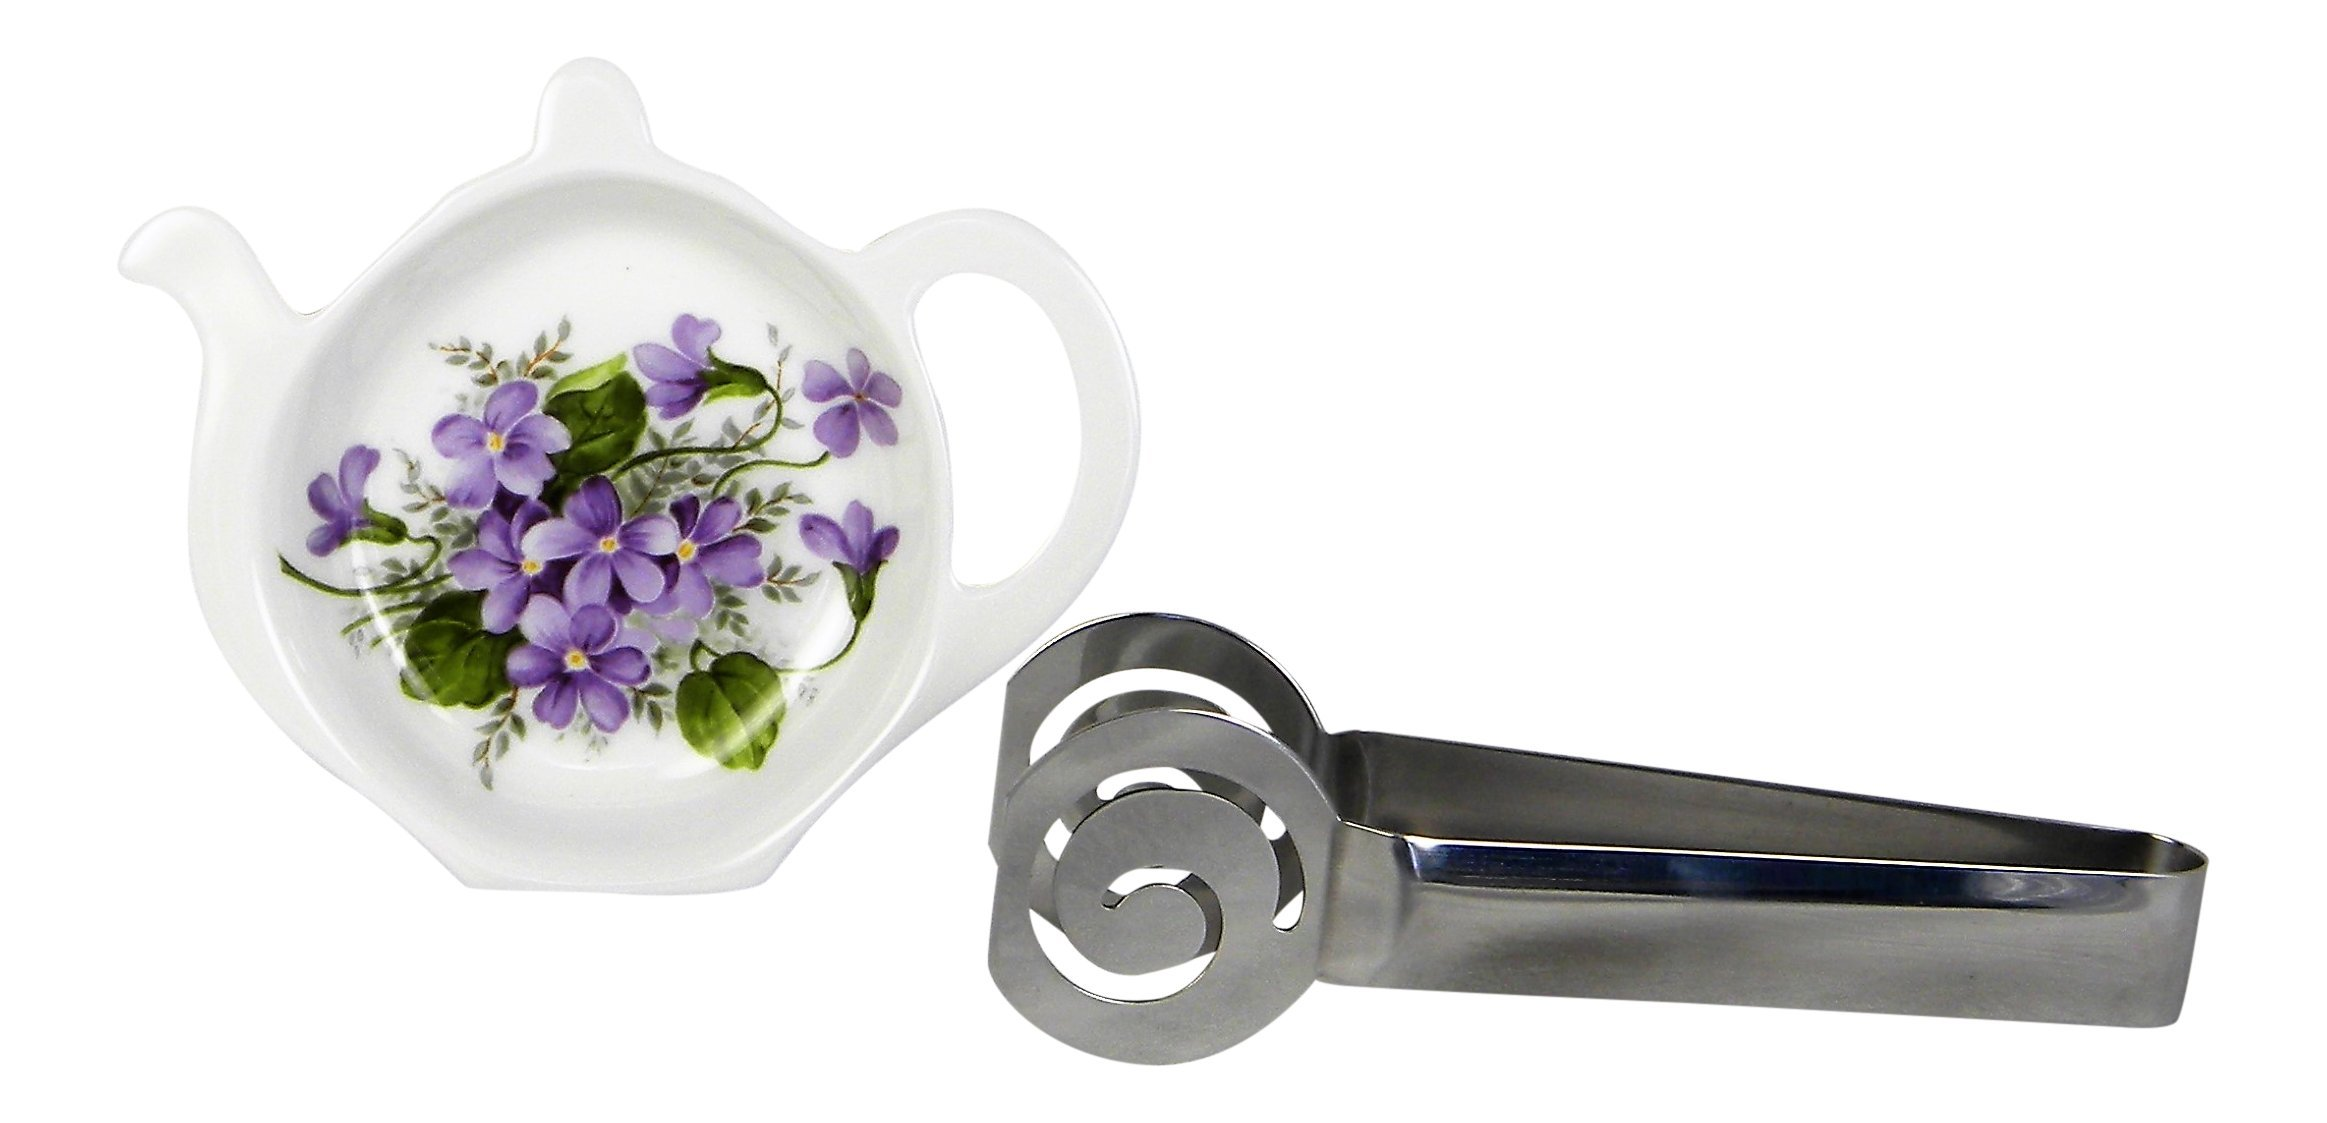 Adderley Bone China Tea Bag Coaster Caddy and Stainless Steel Tea Bag Squeezer England - Wild Violets